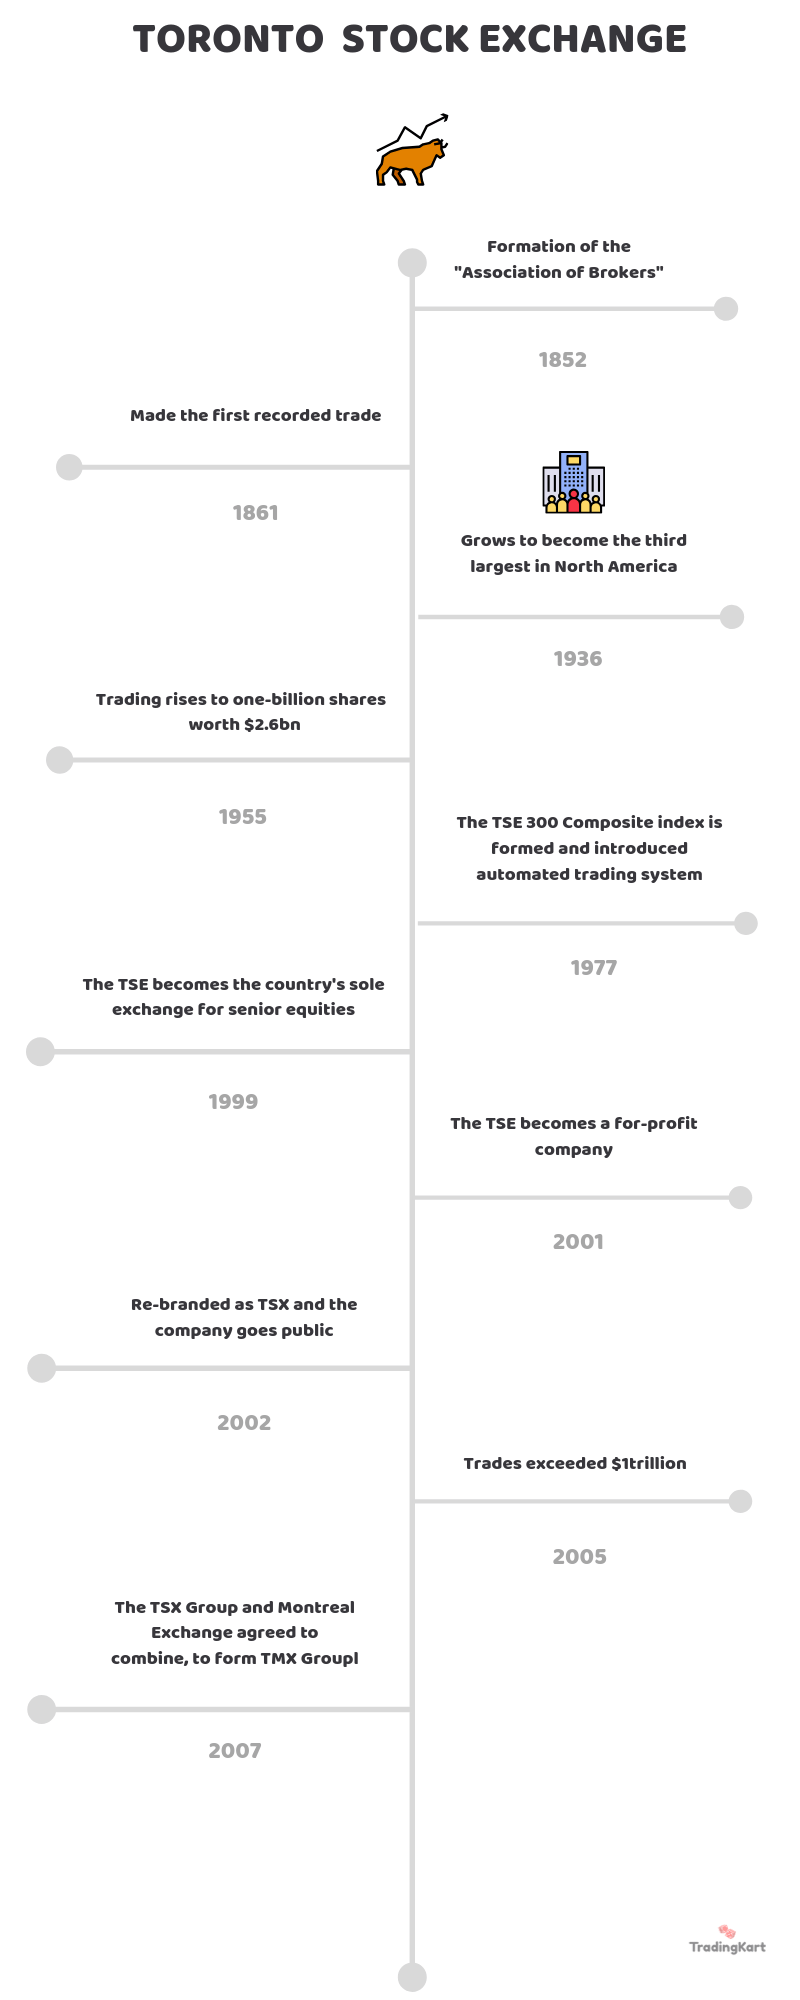 torronto stock exchange timeline